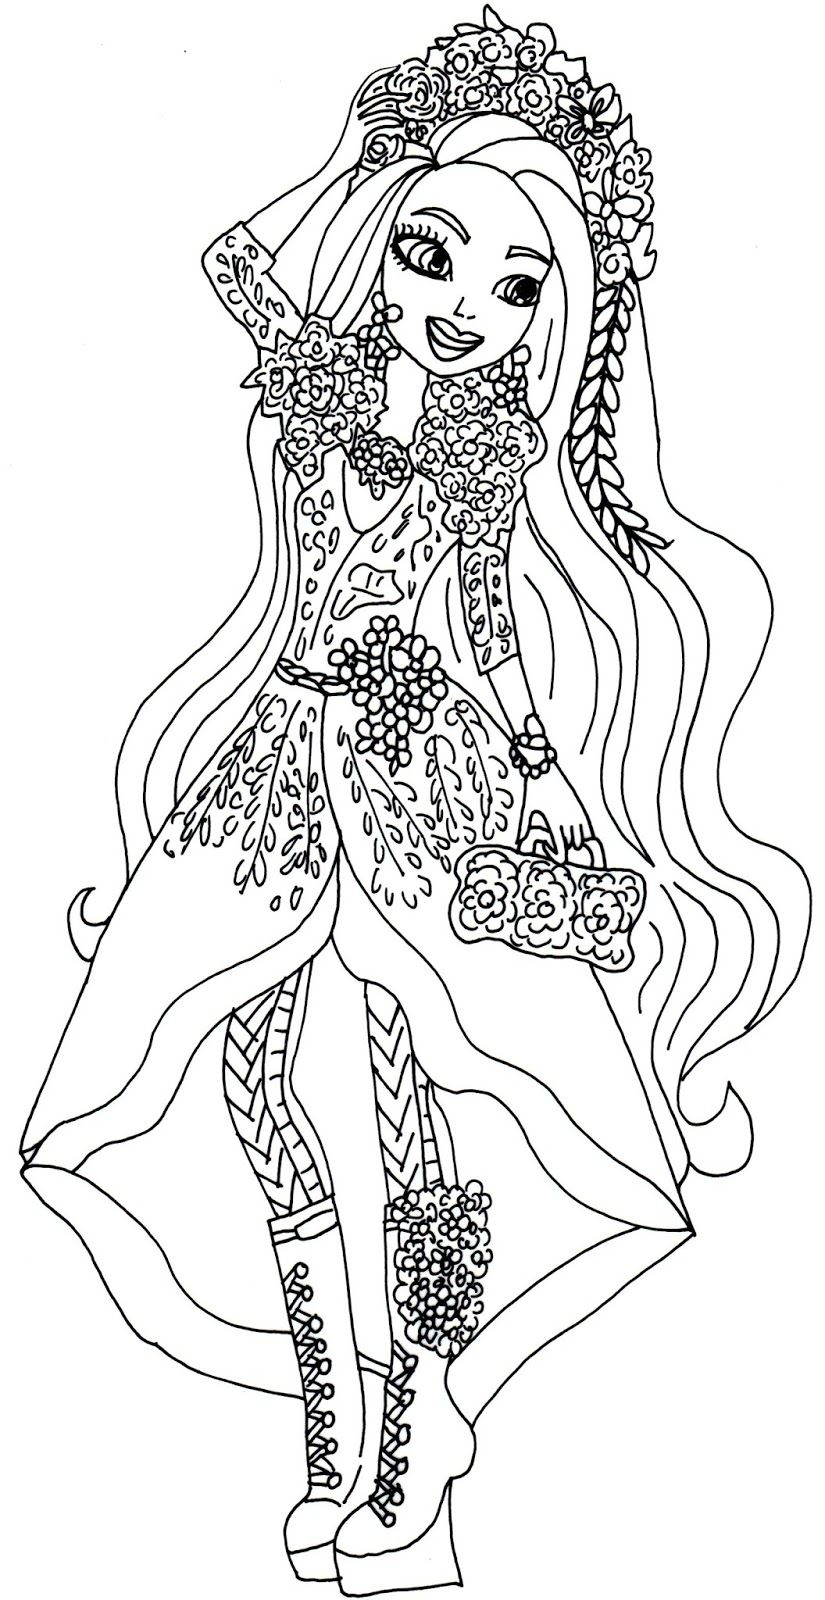 explore ever after high coloring pages and more - Ever After Coloring Pages